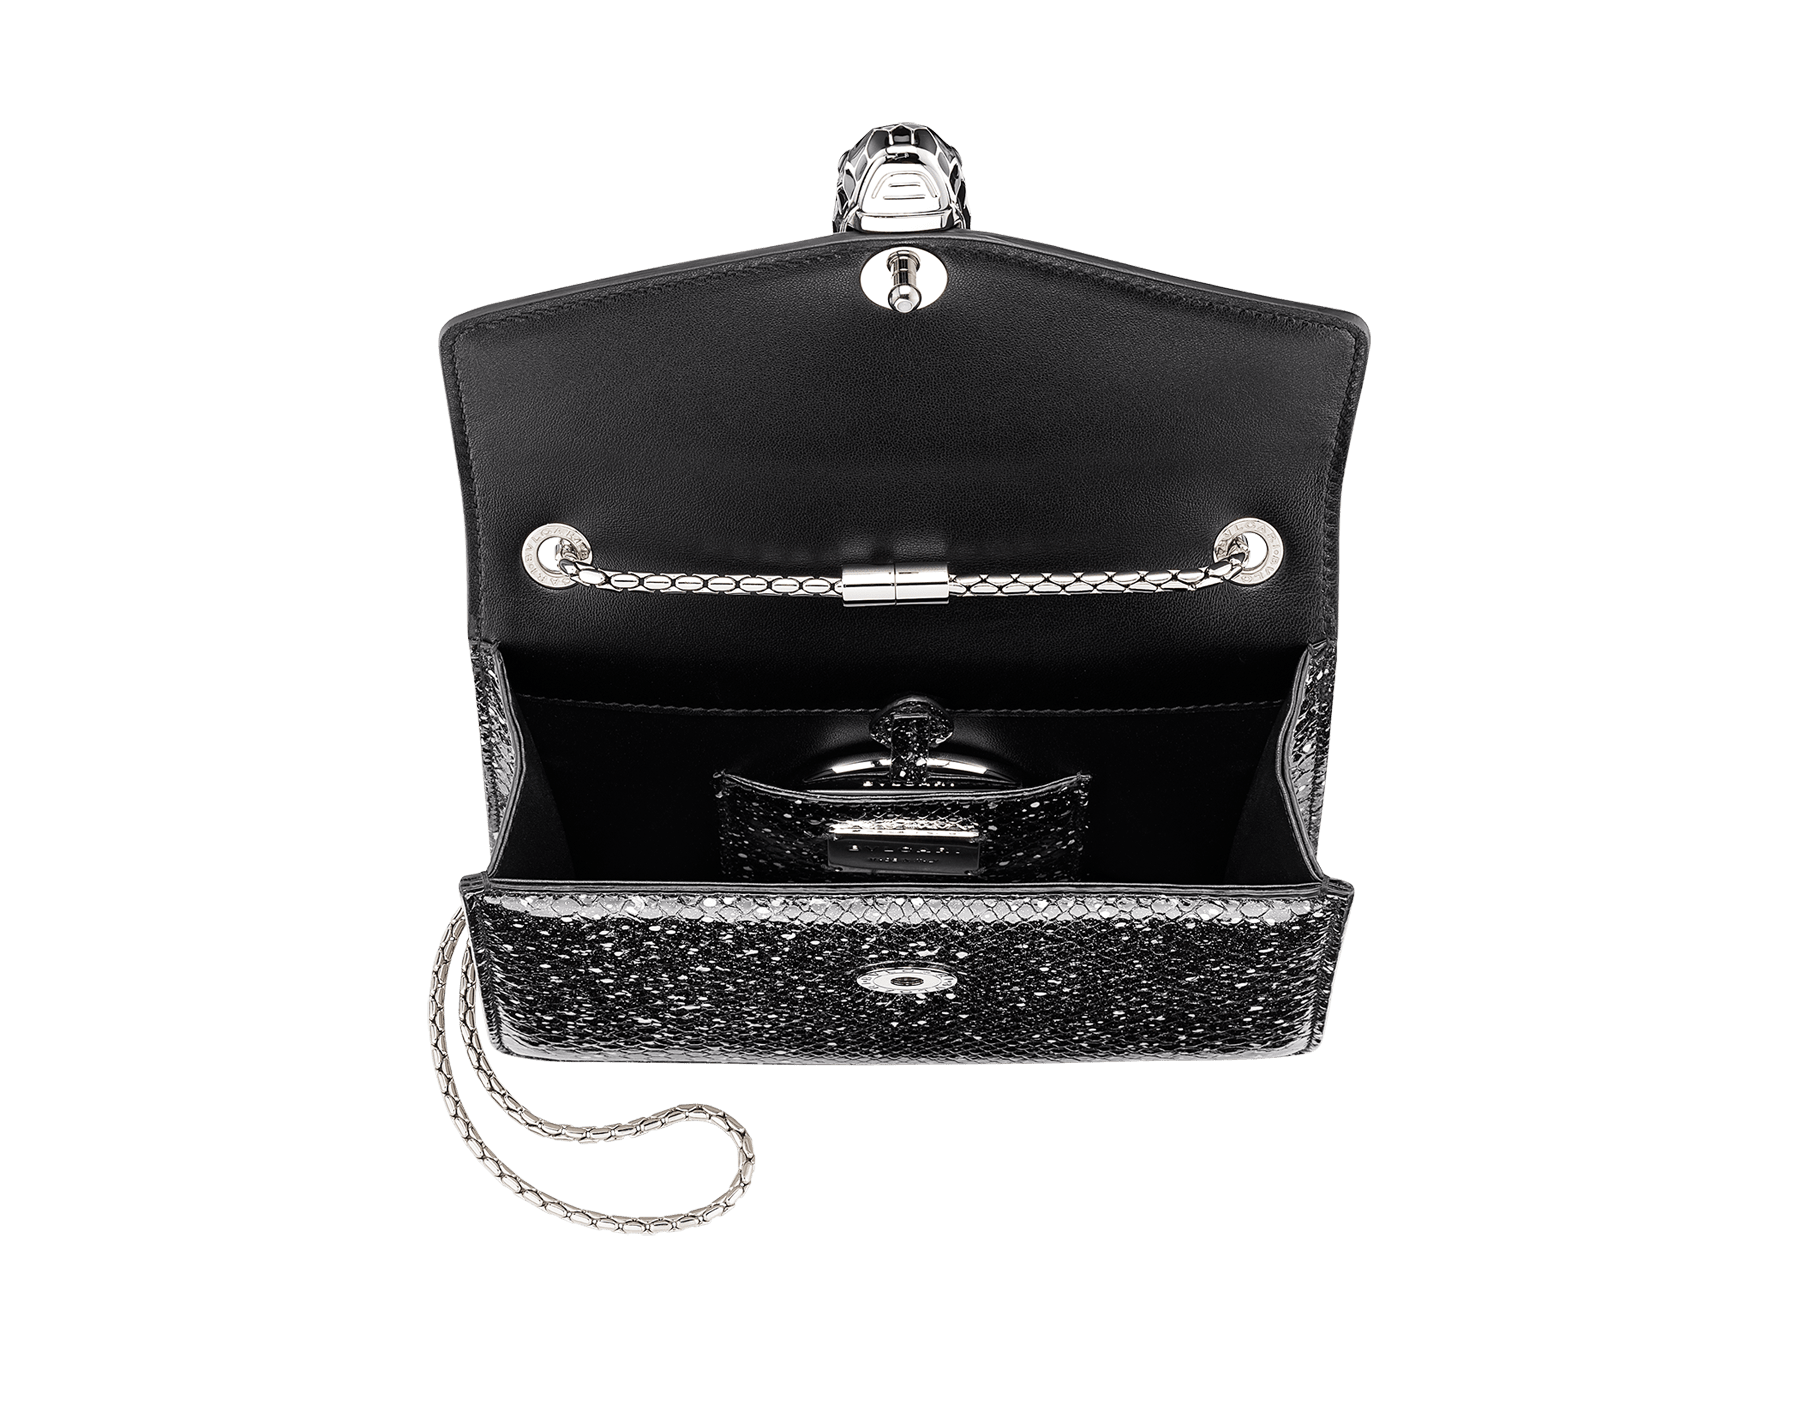 Serpenti Forever crossbody bag in black and white Cosmic python skin. Snakehead closure in palladium plated brass decorated with black and white enamel, and black onyx eyes. 288110 image 4